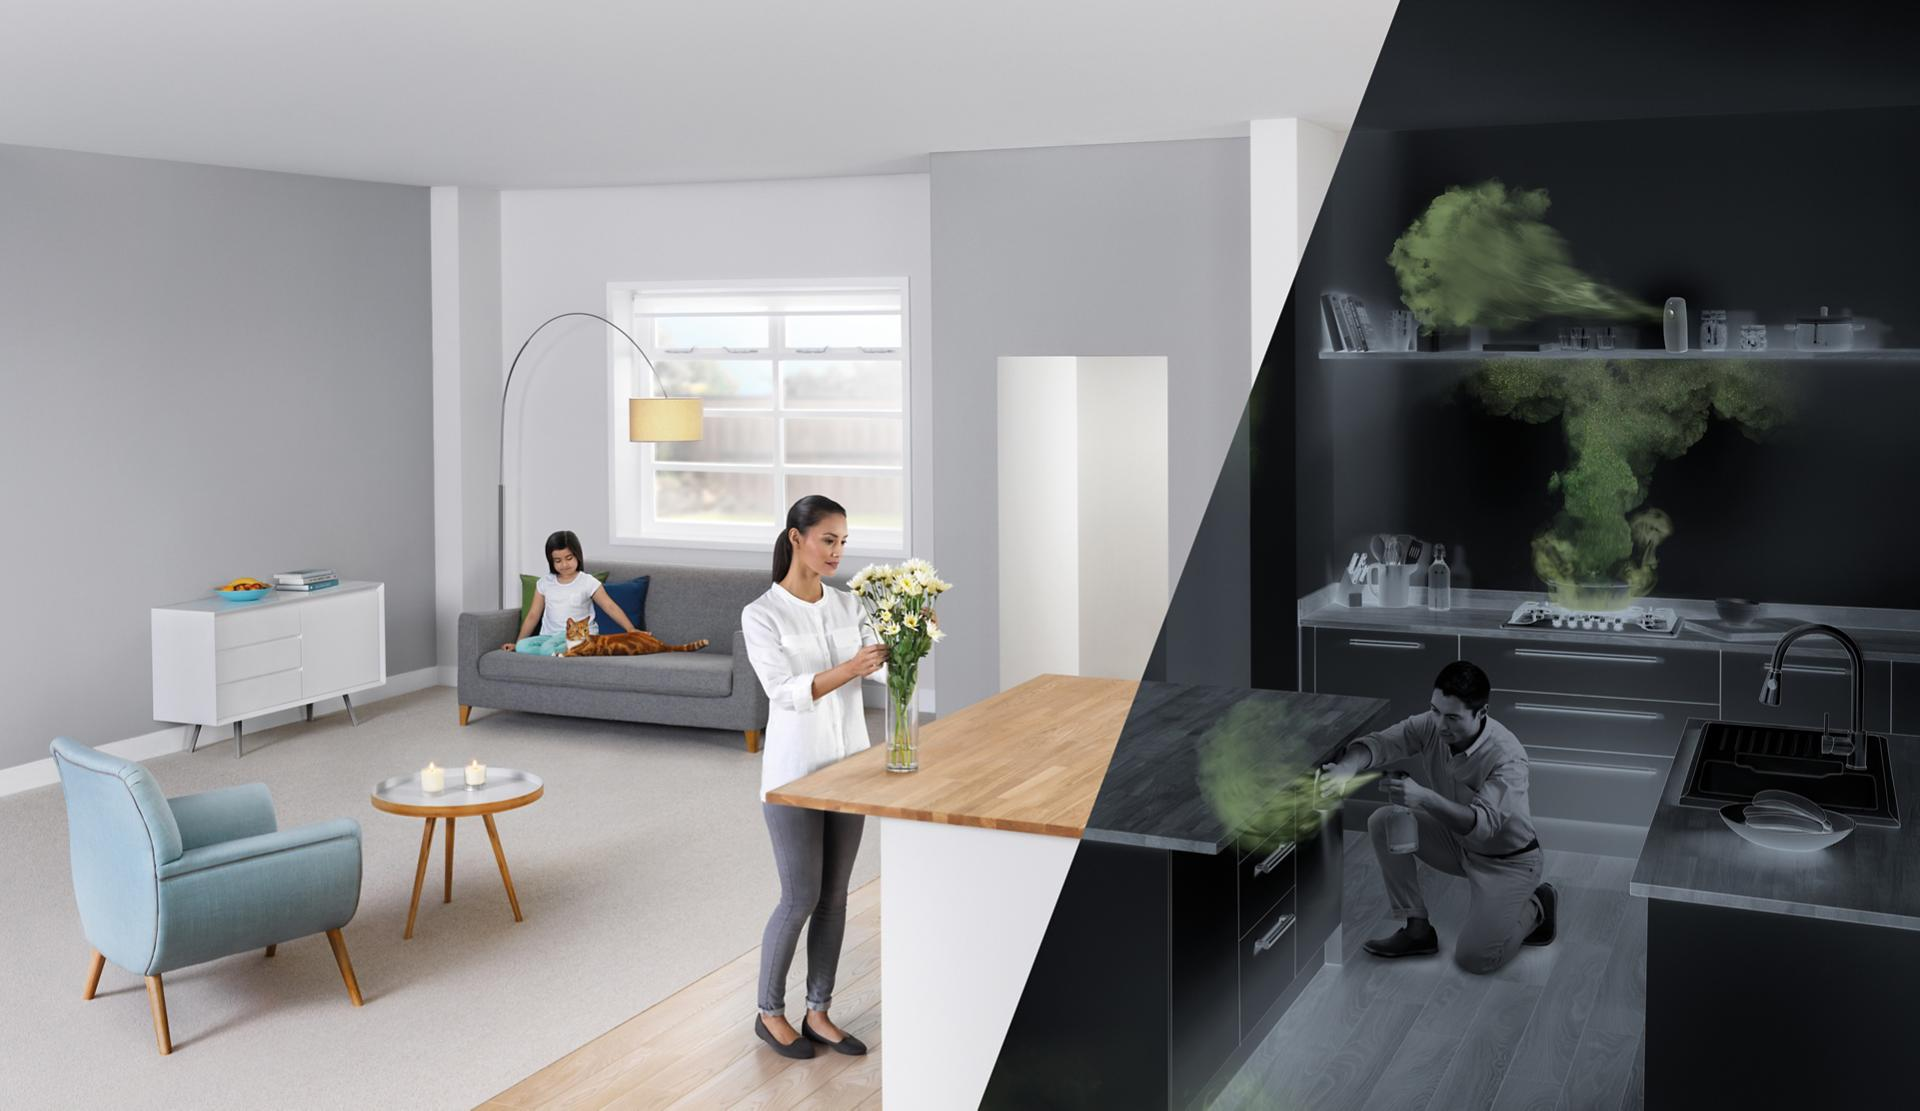 A generic home, in which everyday objects like furniture and the stove release pollutants represented by green plumes